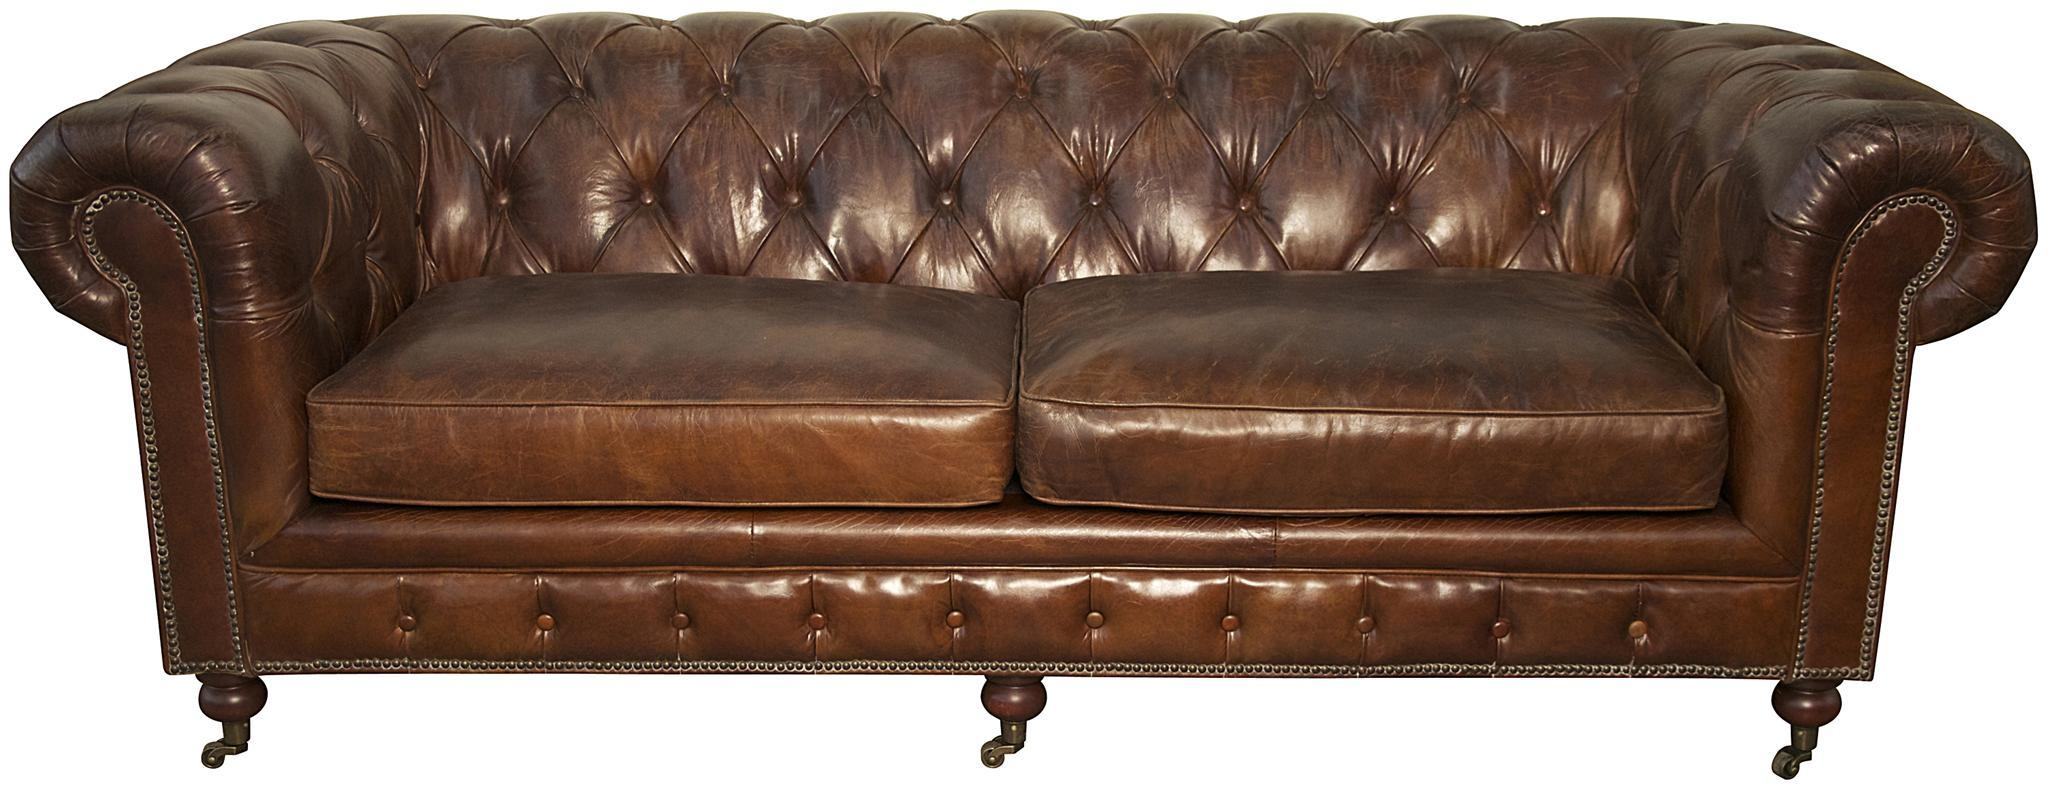 Sofas Center : Leather Tufted Sofa Seat Too With Rolled Arms White With Regard To Brown Tufted Sofas (Image 16 of 20)